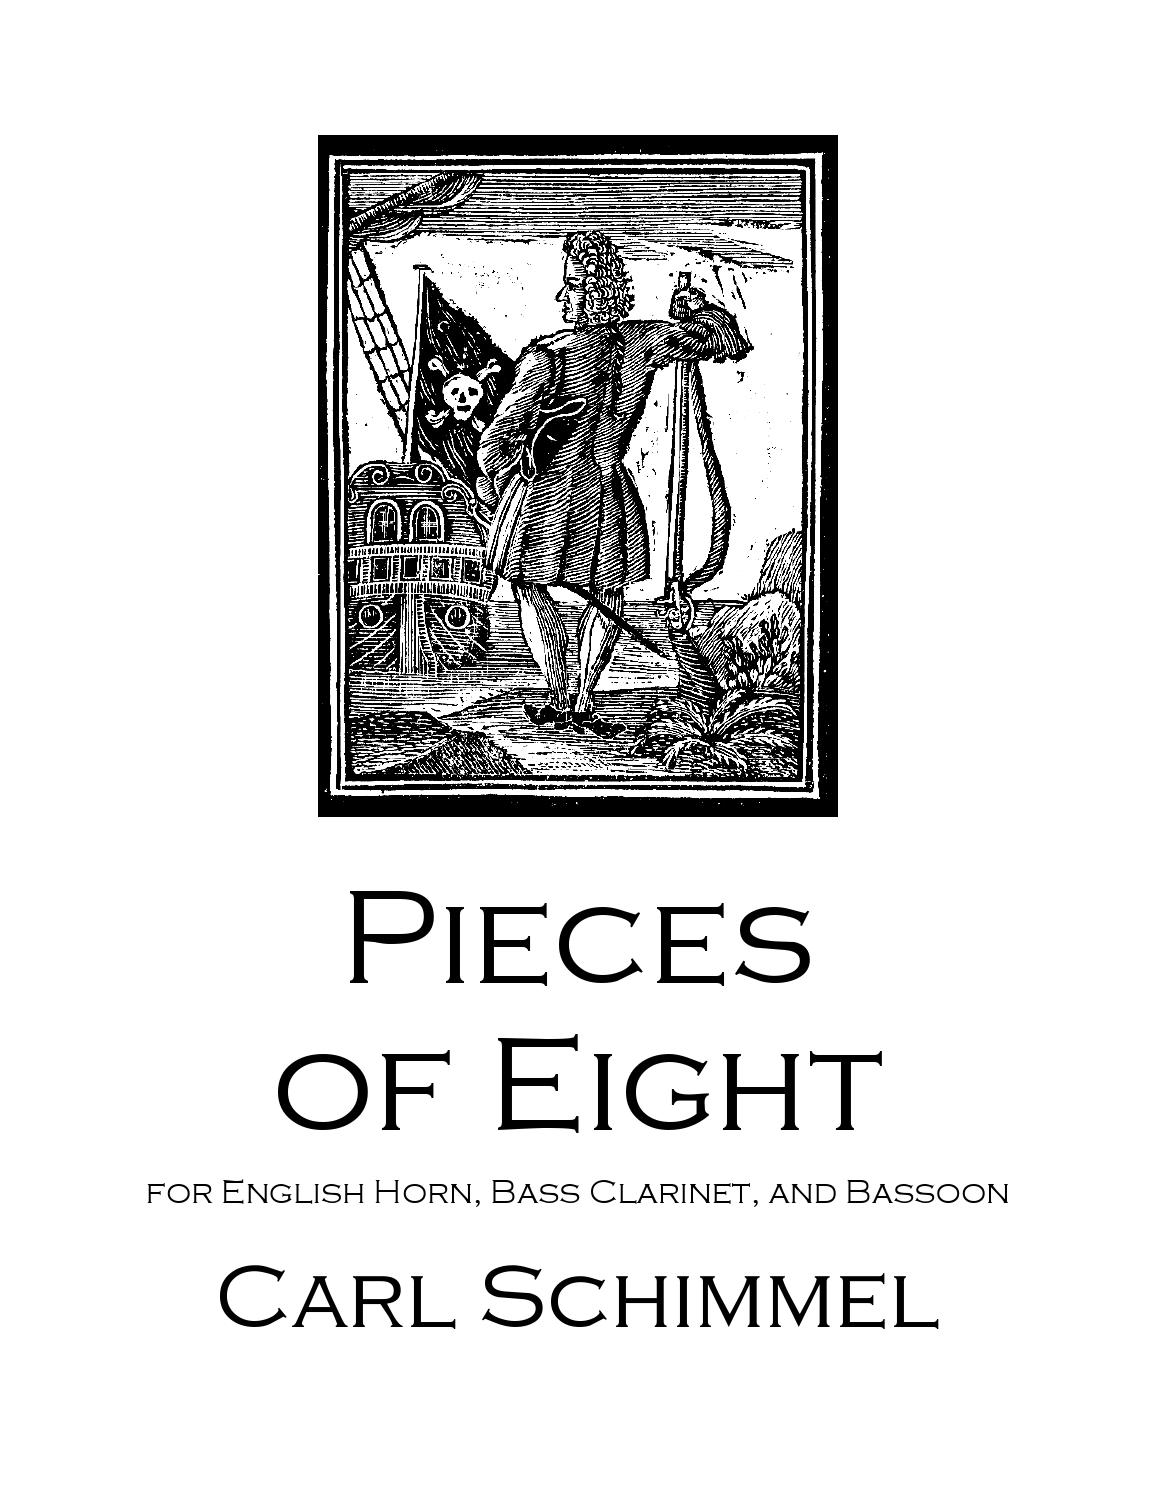 Pieces of Eight, by Carl Schimmel (for English Horn, Bass Clarinet, and  Bassoon)